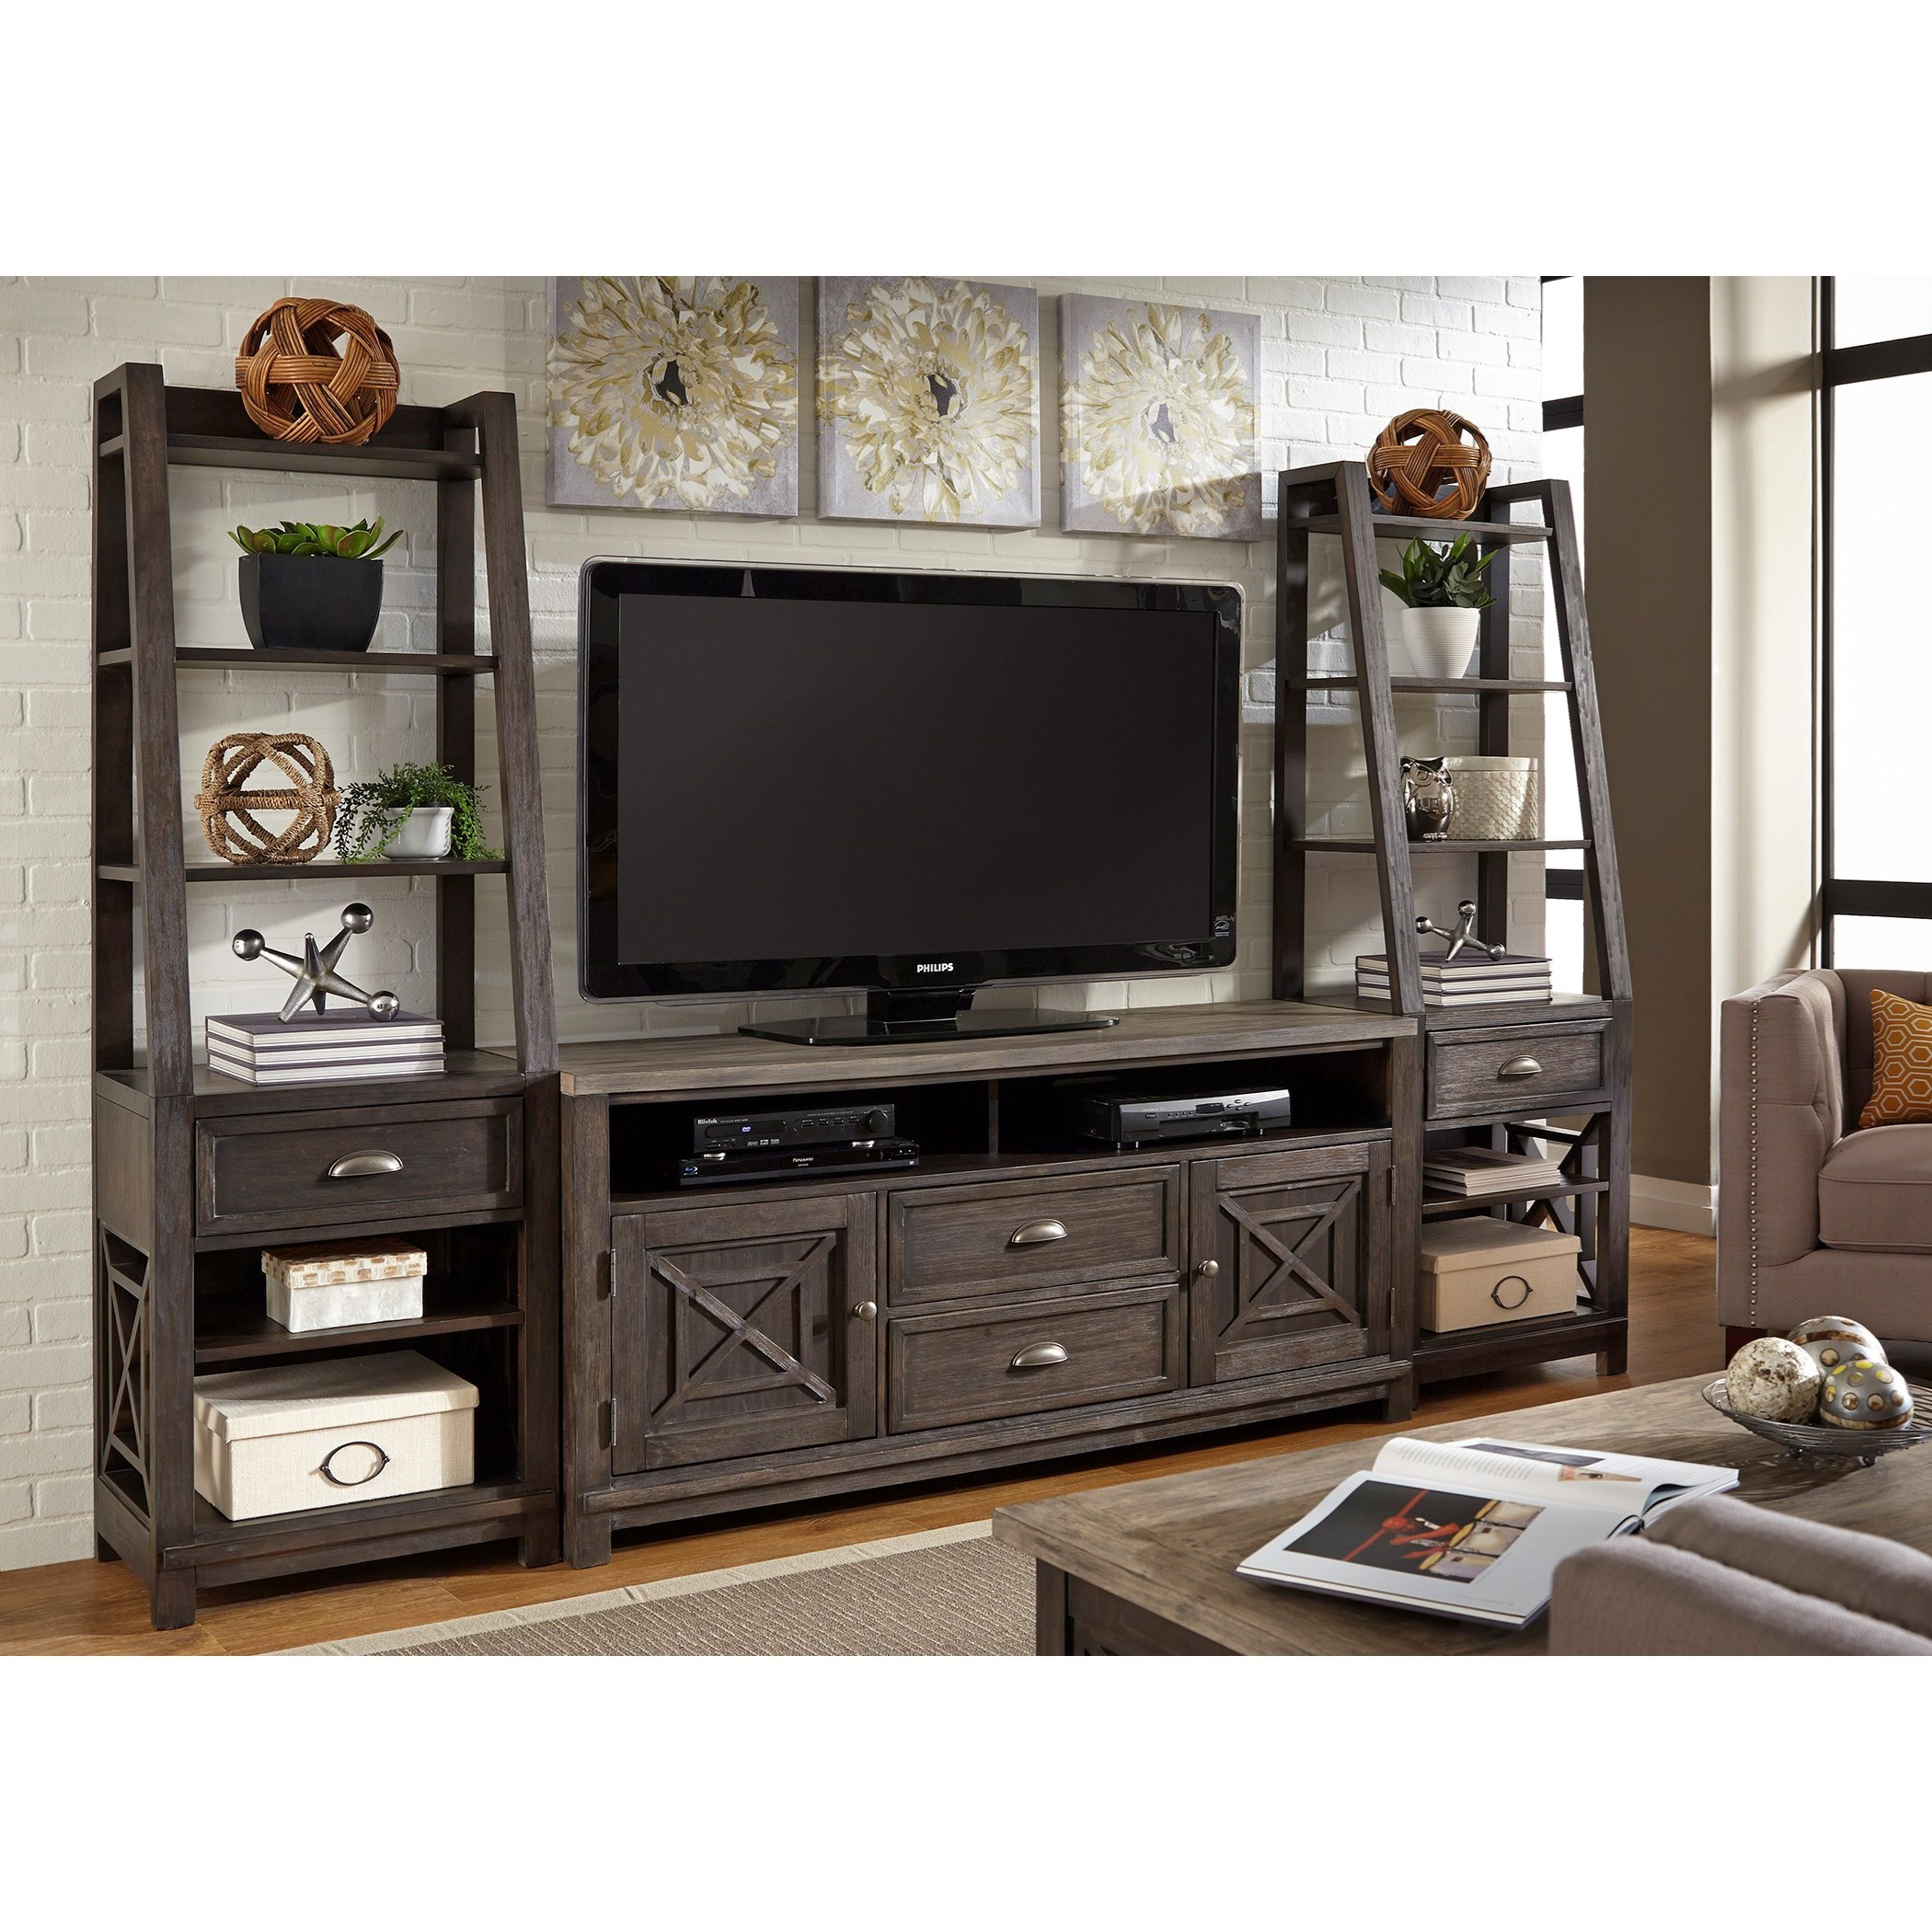 Liberty Furniture Heatherbrook Entertainment Entertainment Center with Piers - Item Number: 422-ENTW-ECP